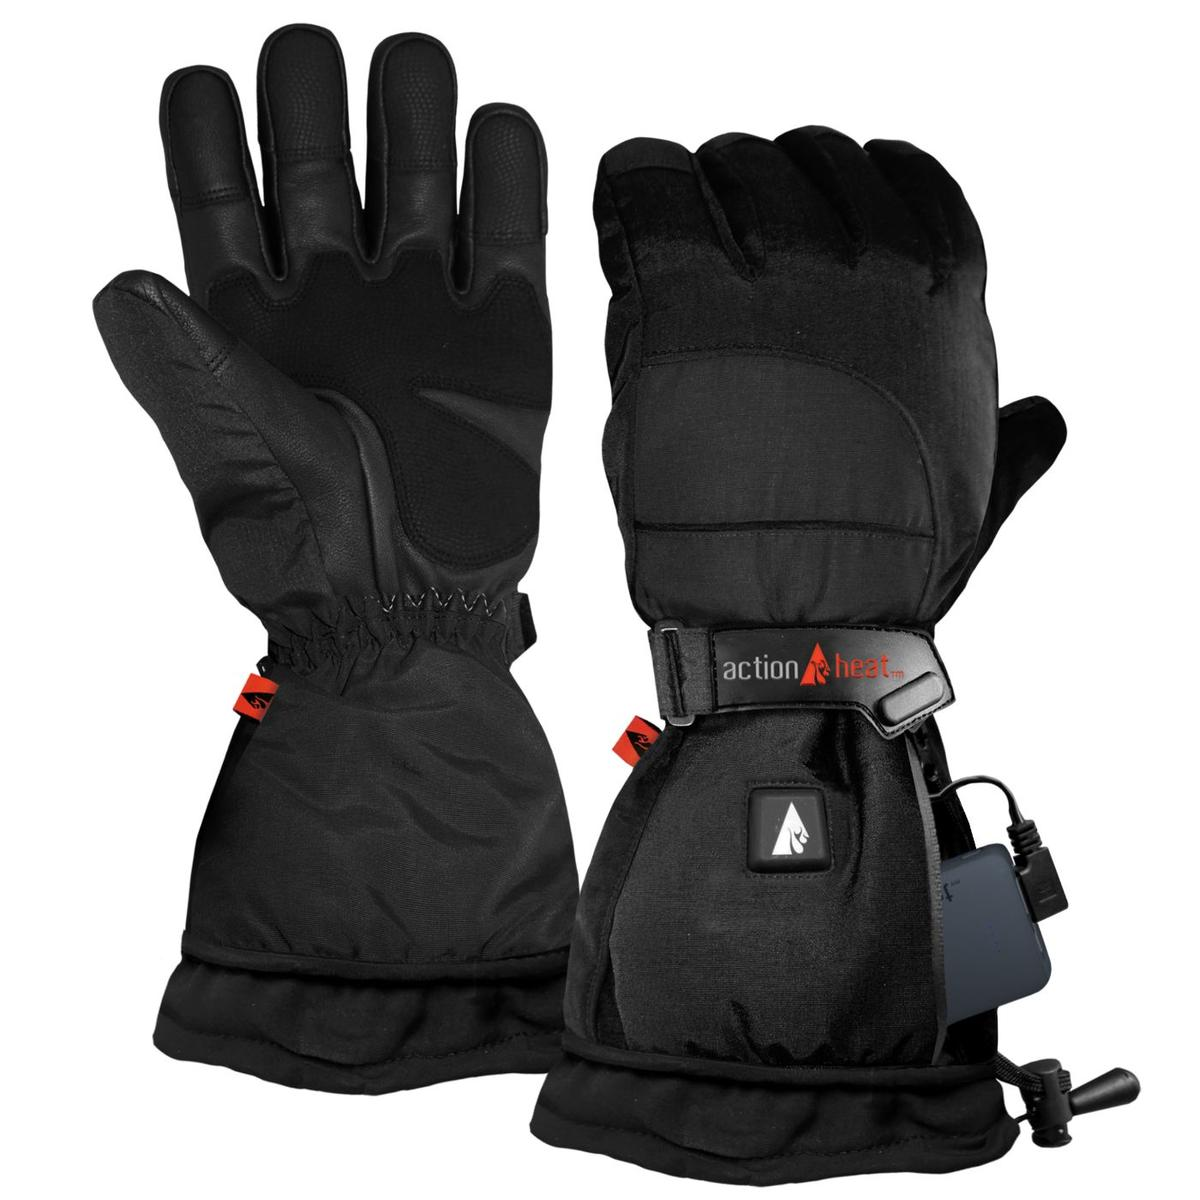 ActionHeat 5V Battery Heated Snow Gloves - Women's - Heated